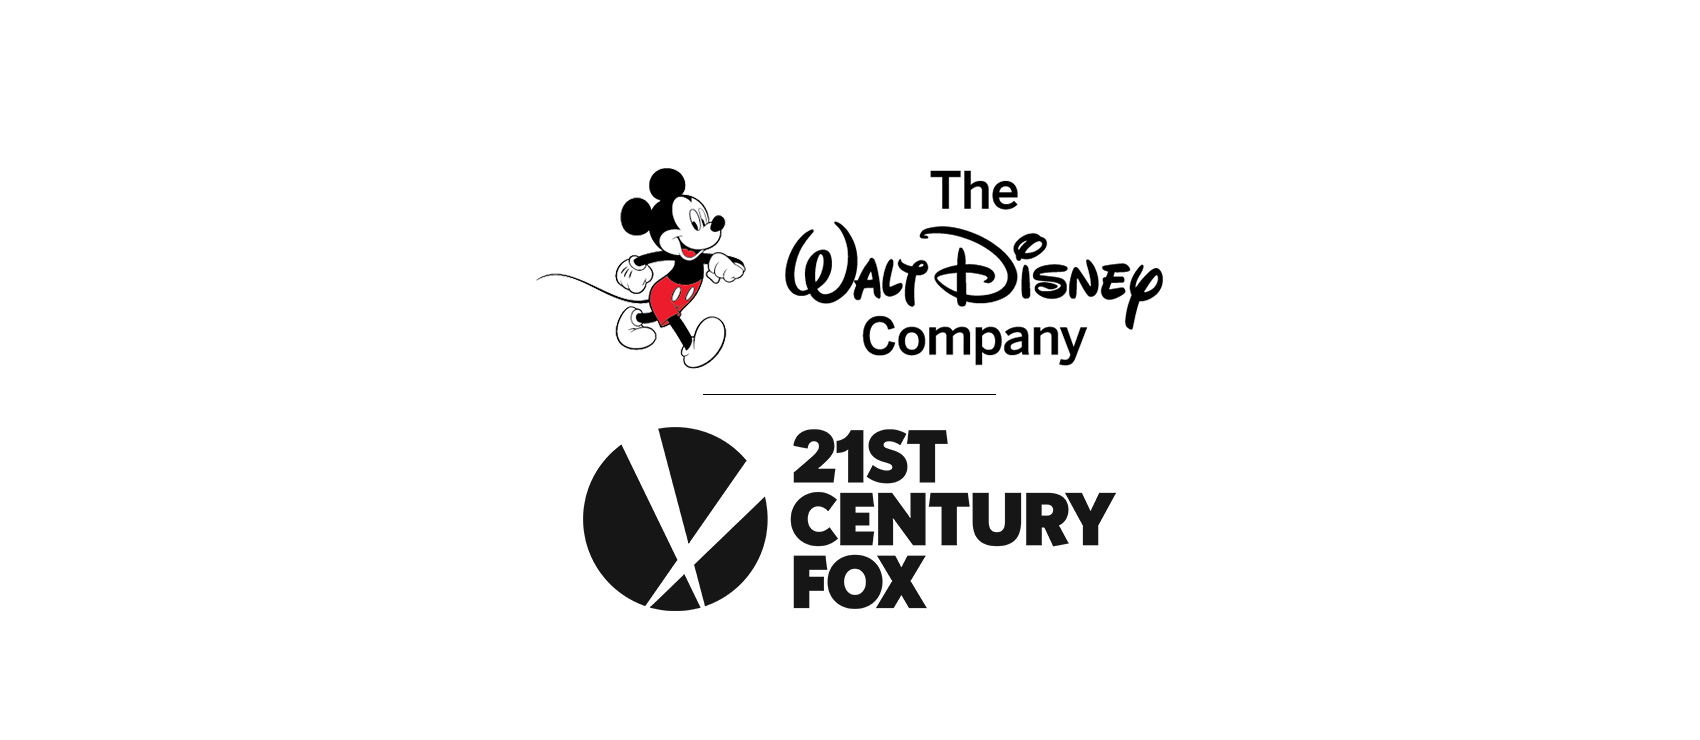 Investor relations stock information events reports financial the walt disney company signs amended acquisition agreement to acquire twenty first century fox inc for 713 billion in cash and stock publicscrutiny Images